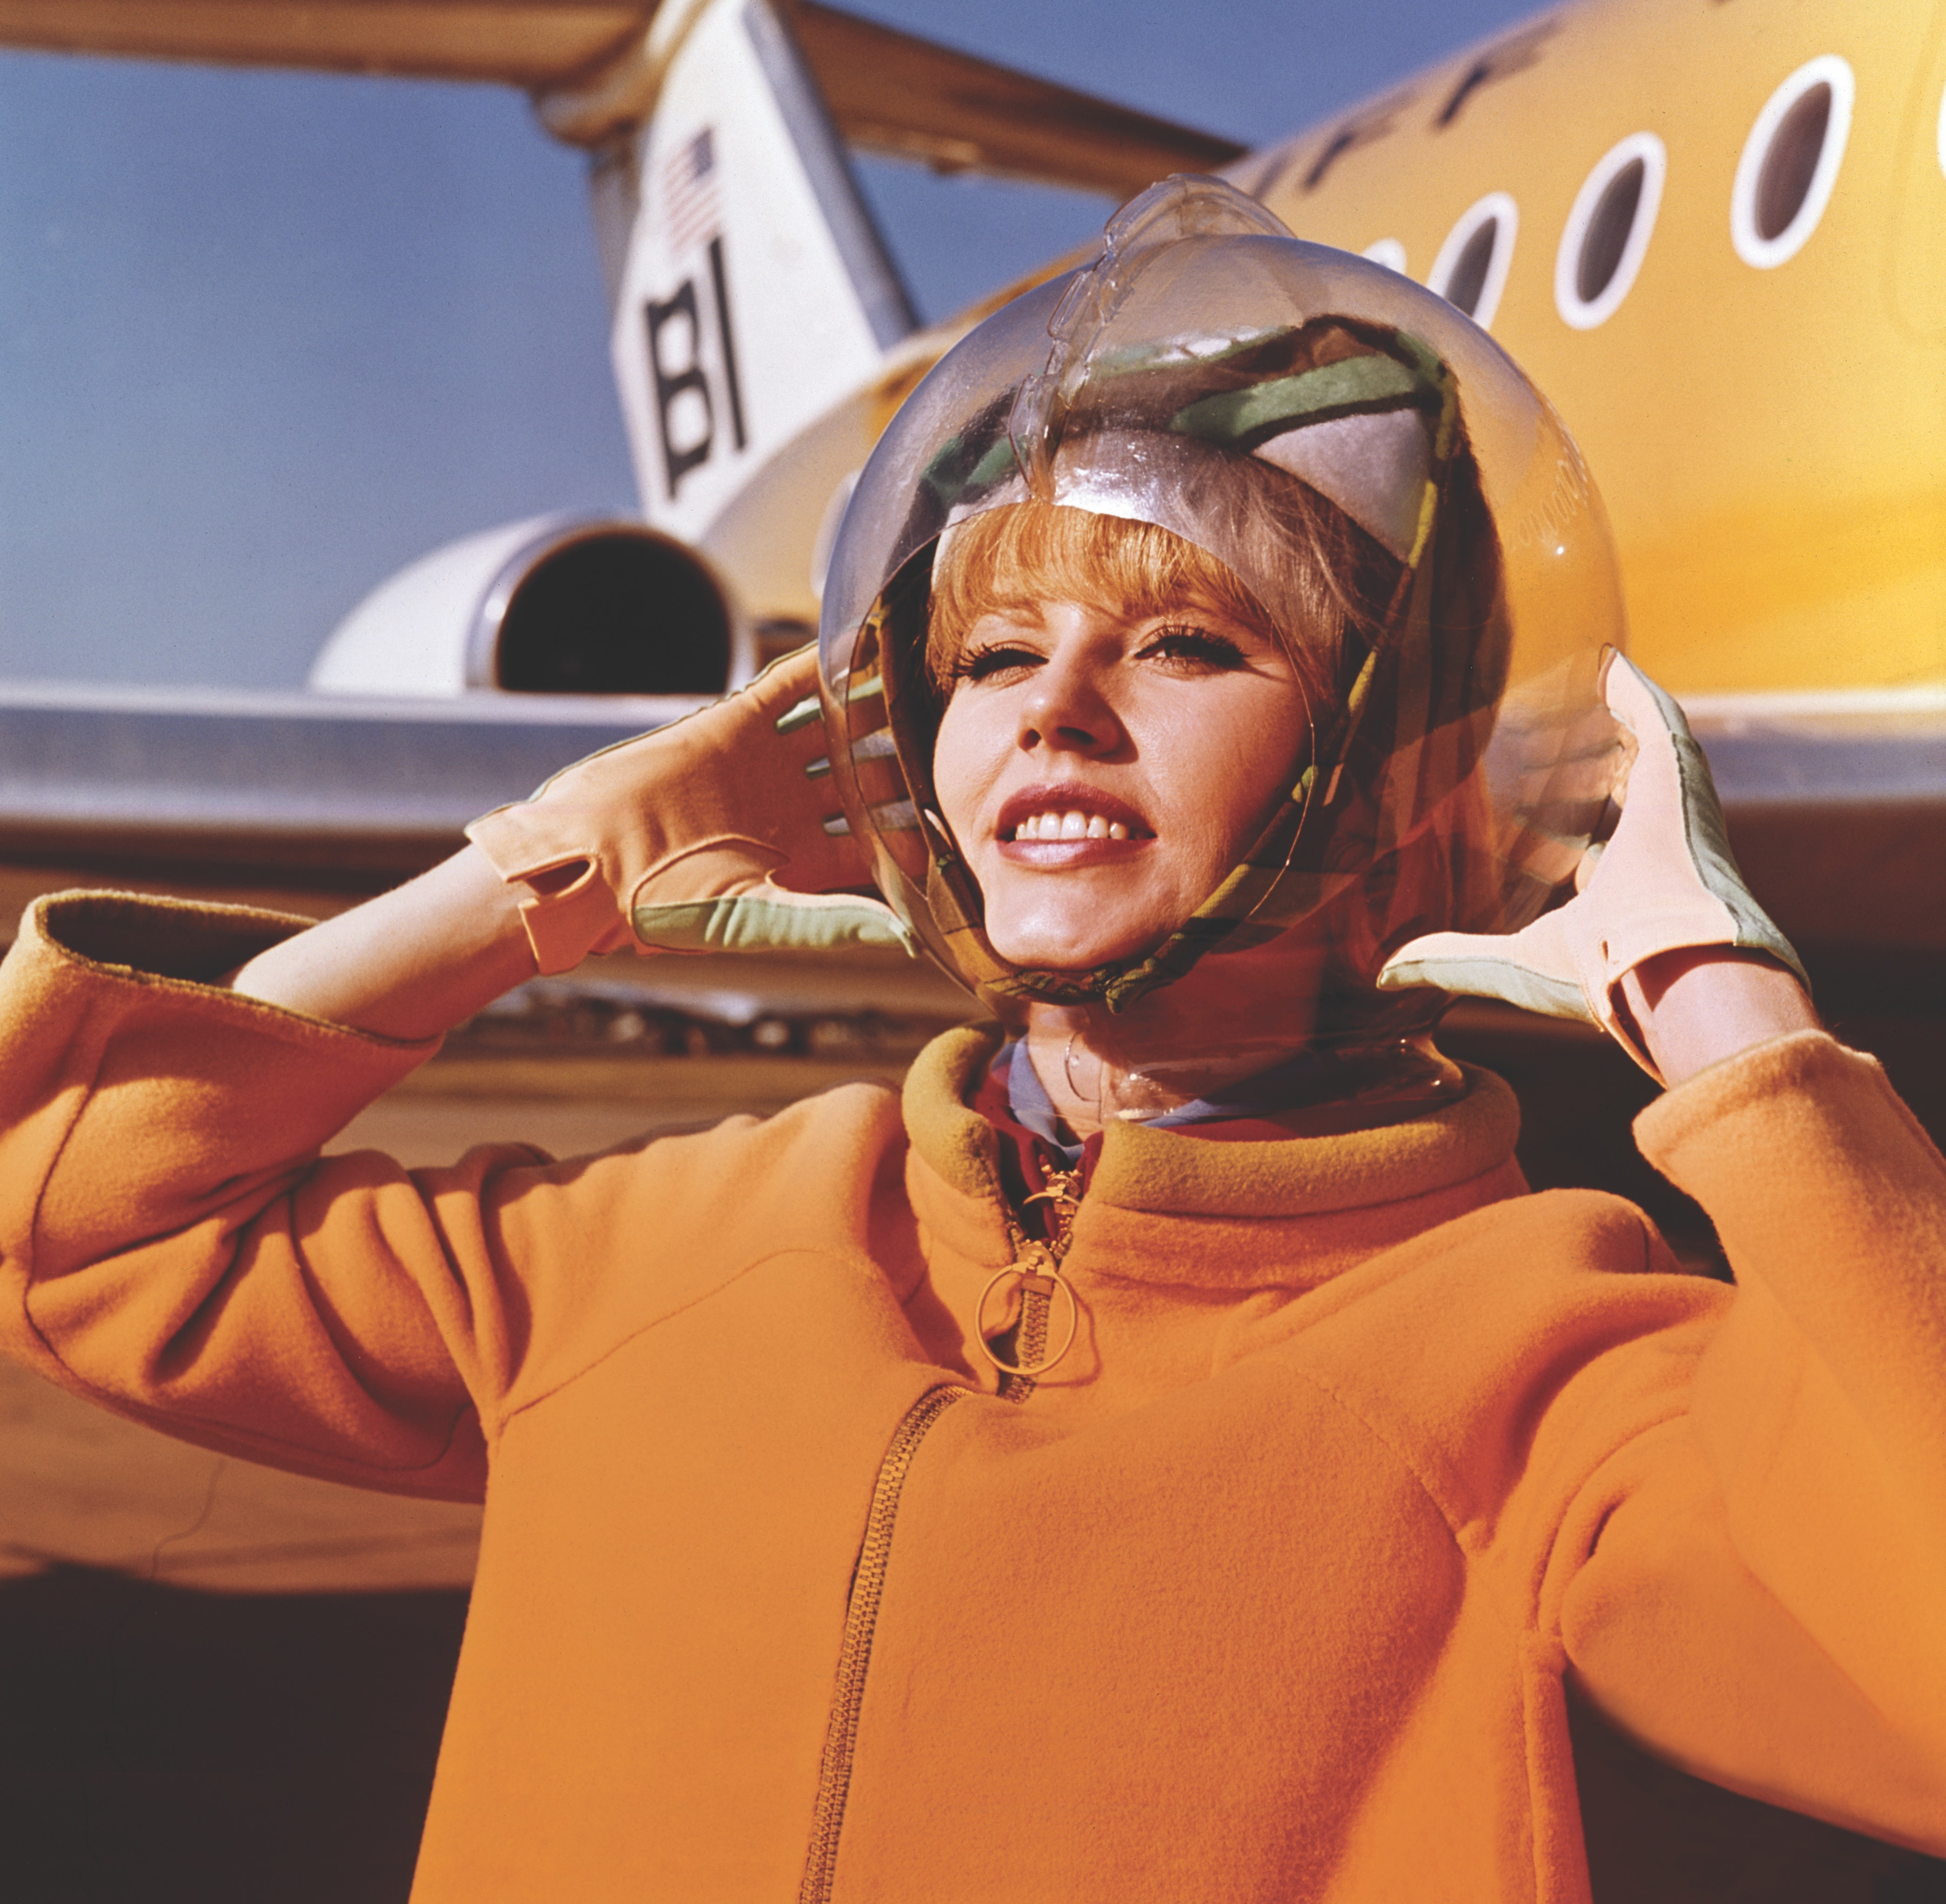 Flight Attendant Uniforms Through The Years Have A More